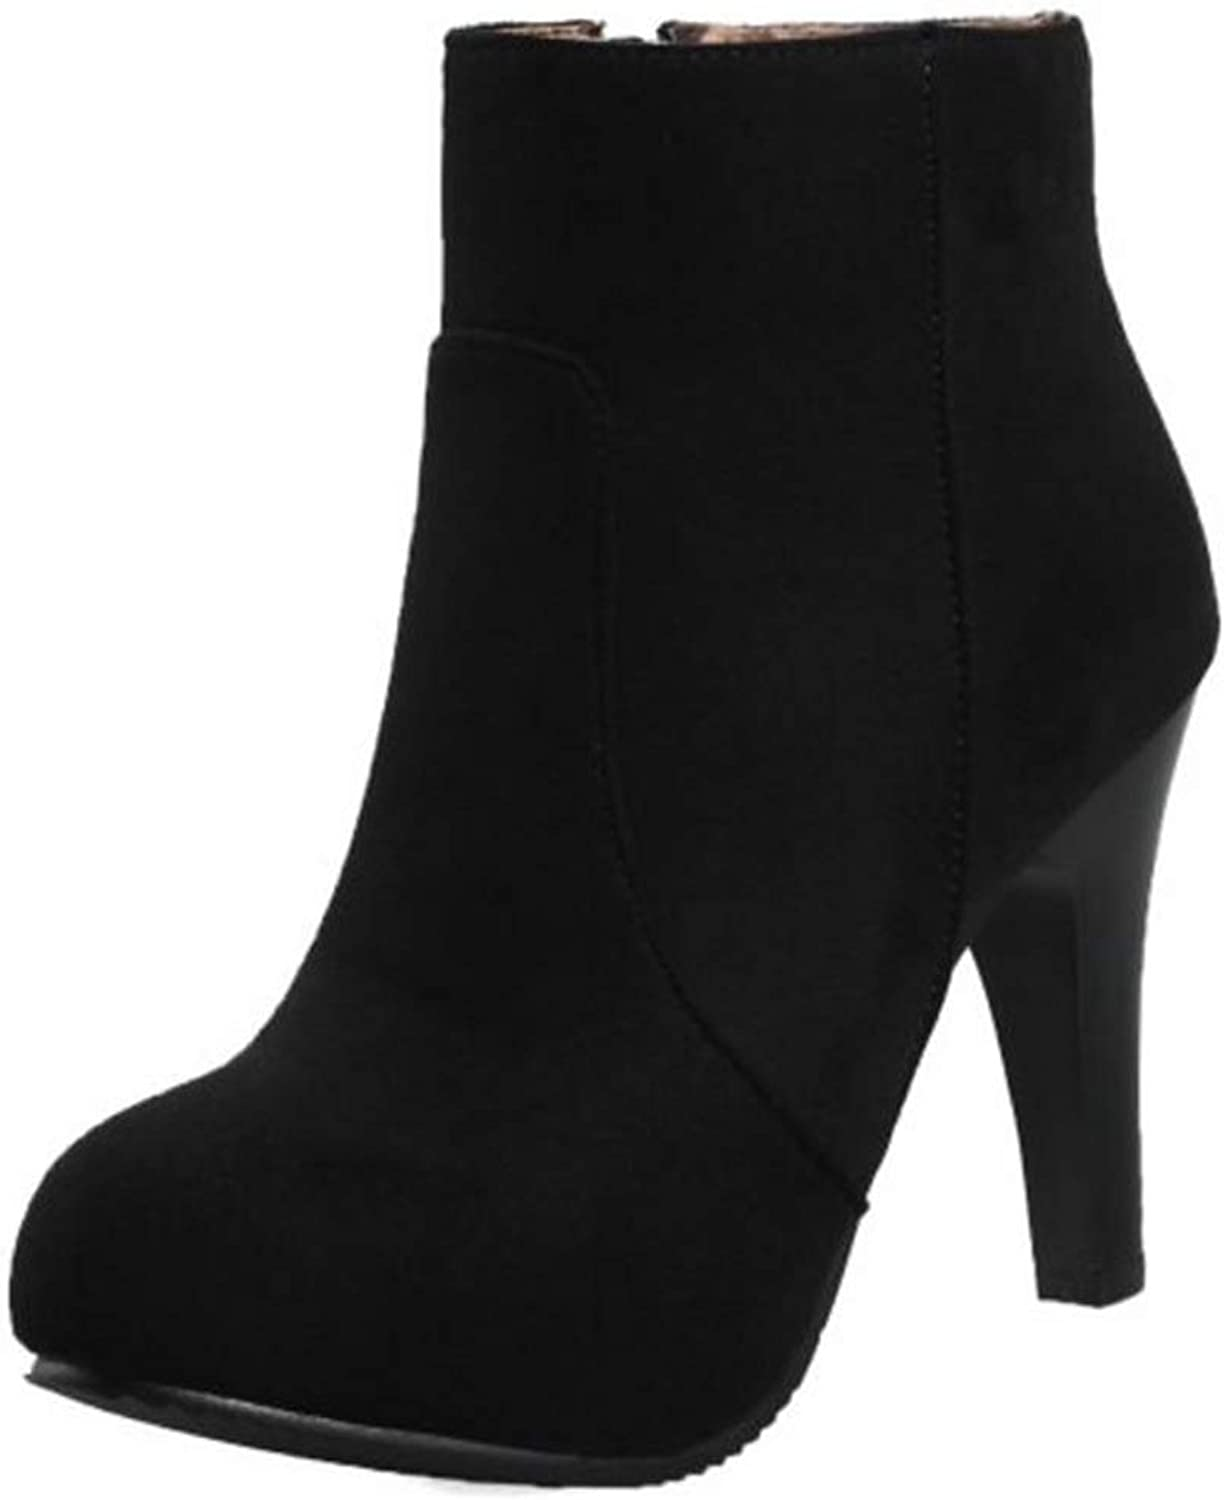 Cocey Women Fashion High Heel Ankle Boots Black